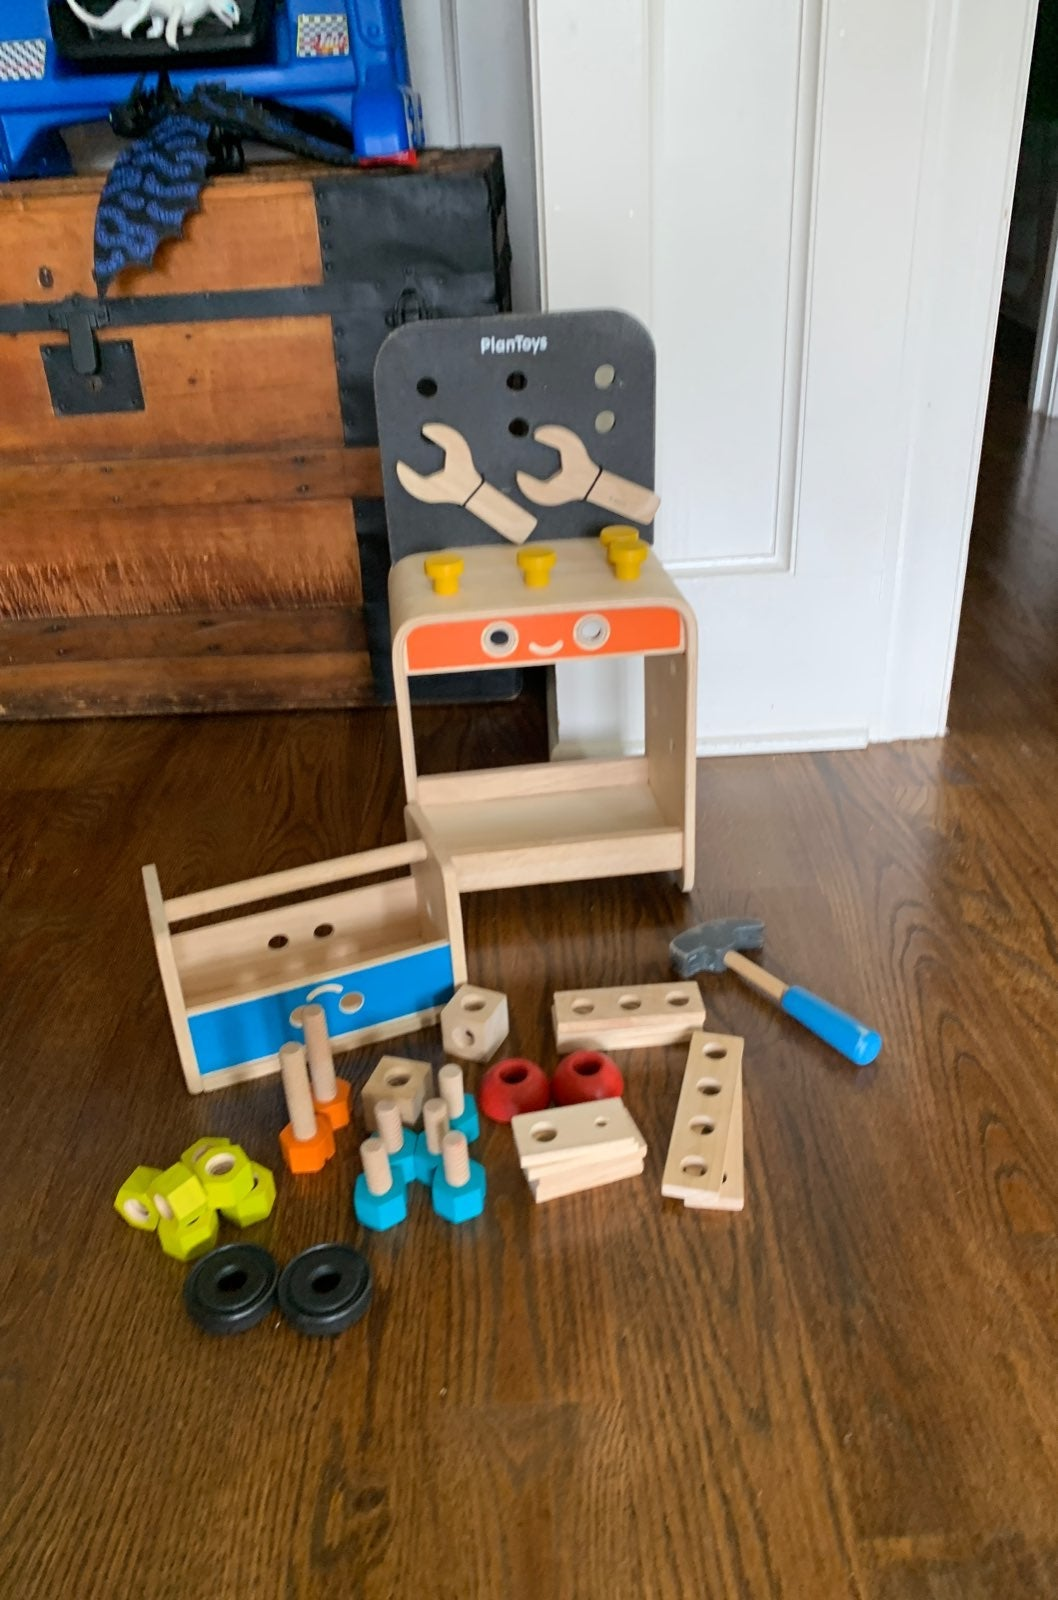 Plan toys workbench and toolbox